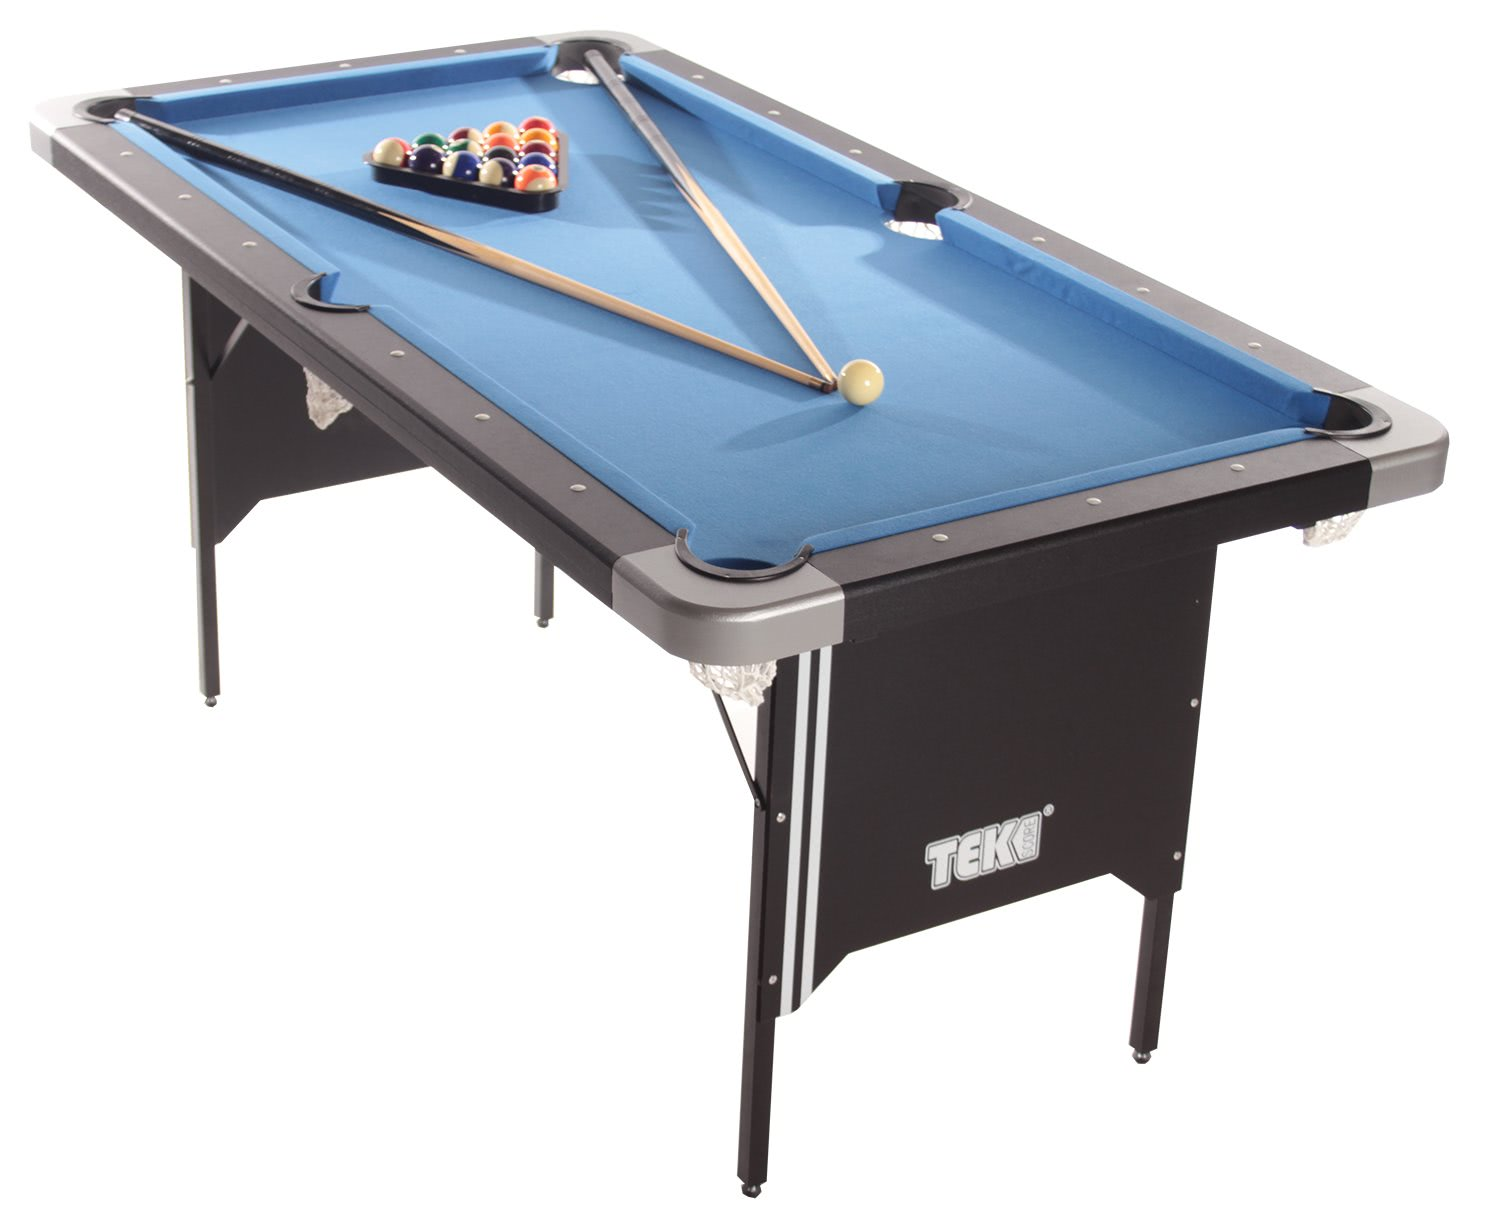 BCE 6ft Vertical Folding Home Pool Table (FP-6TT) | Liberty Games